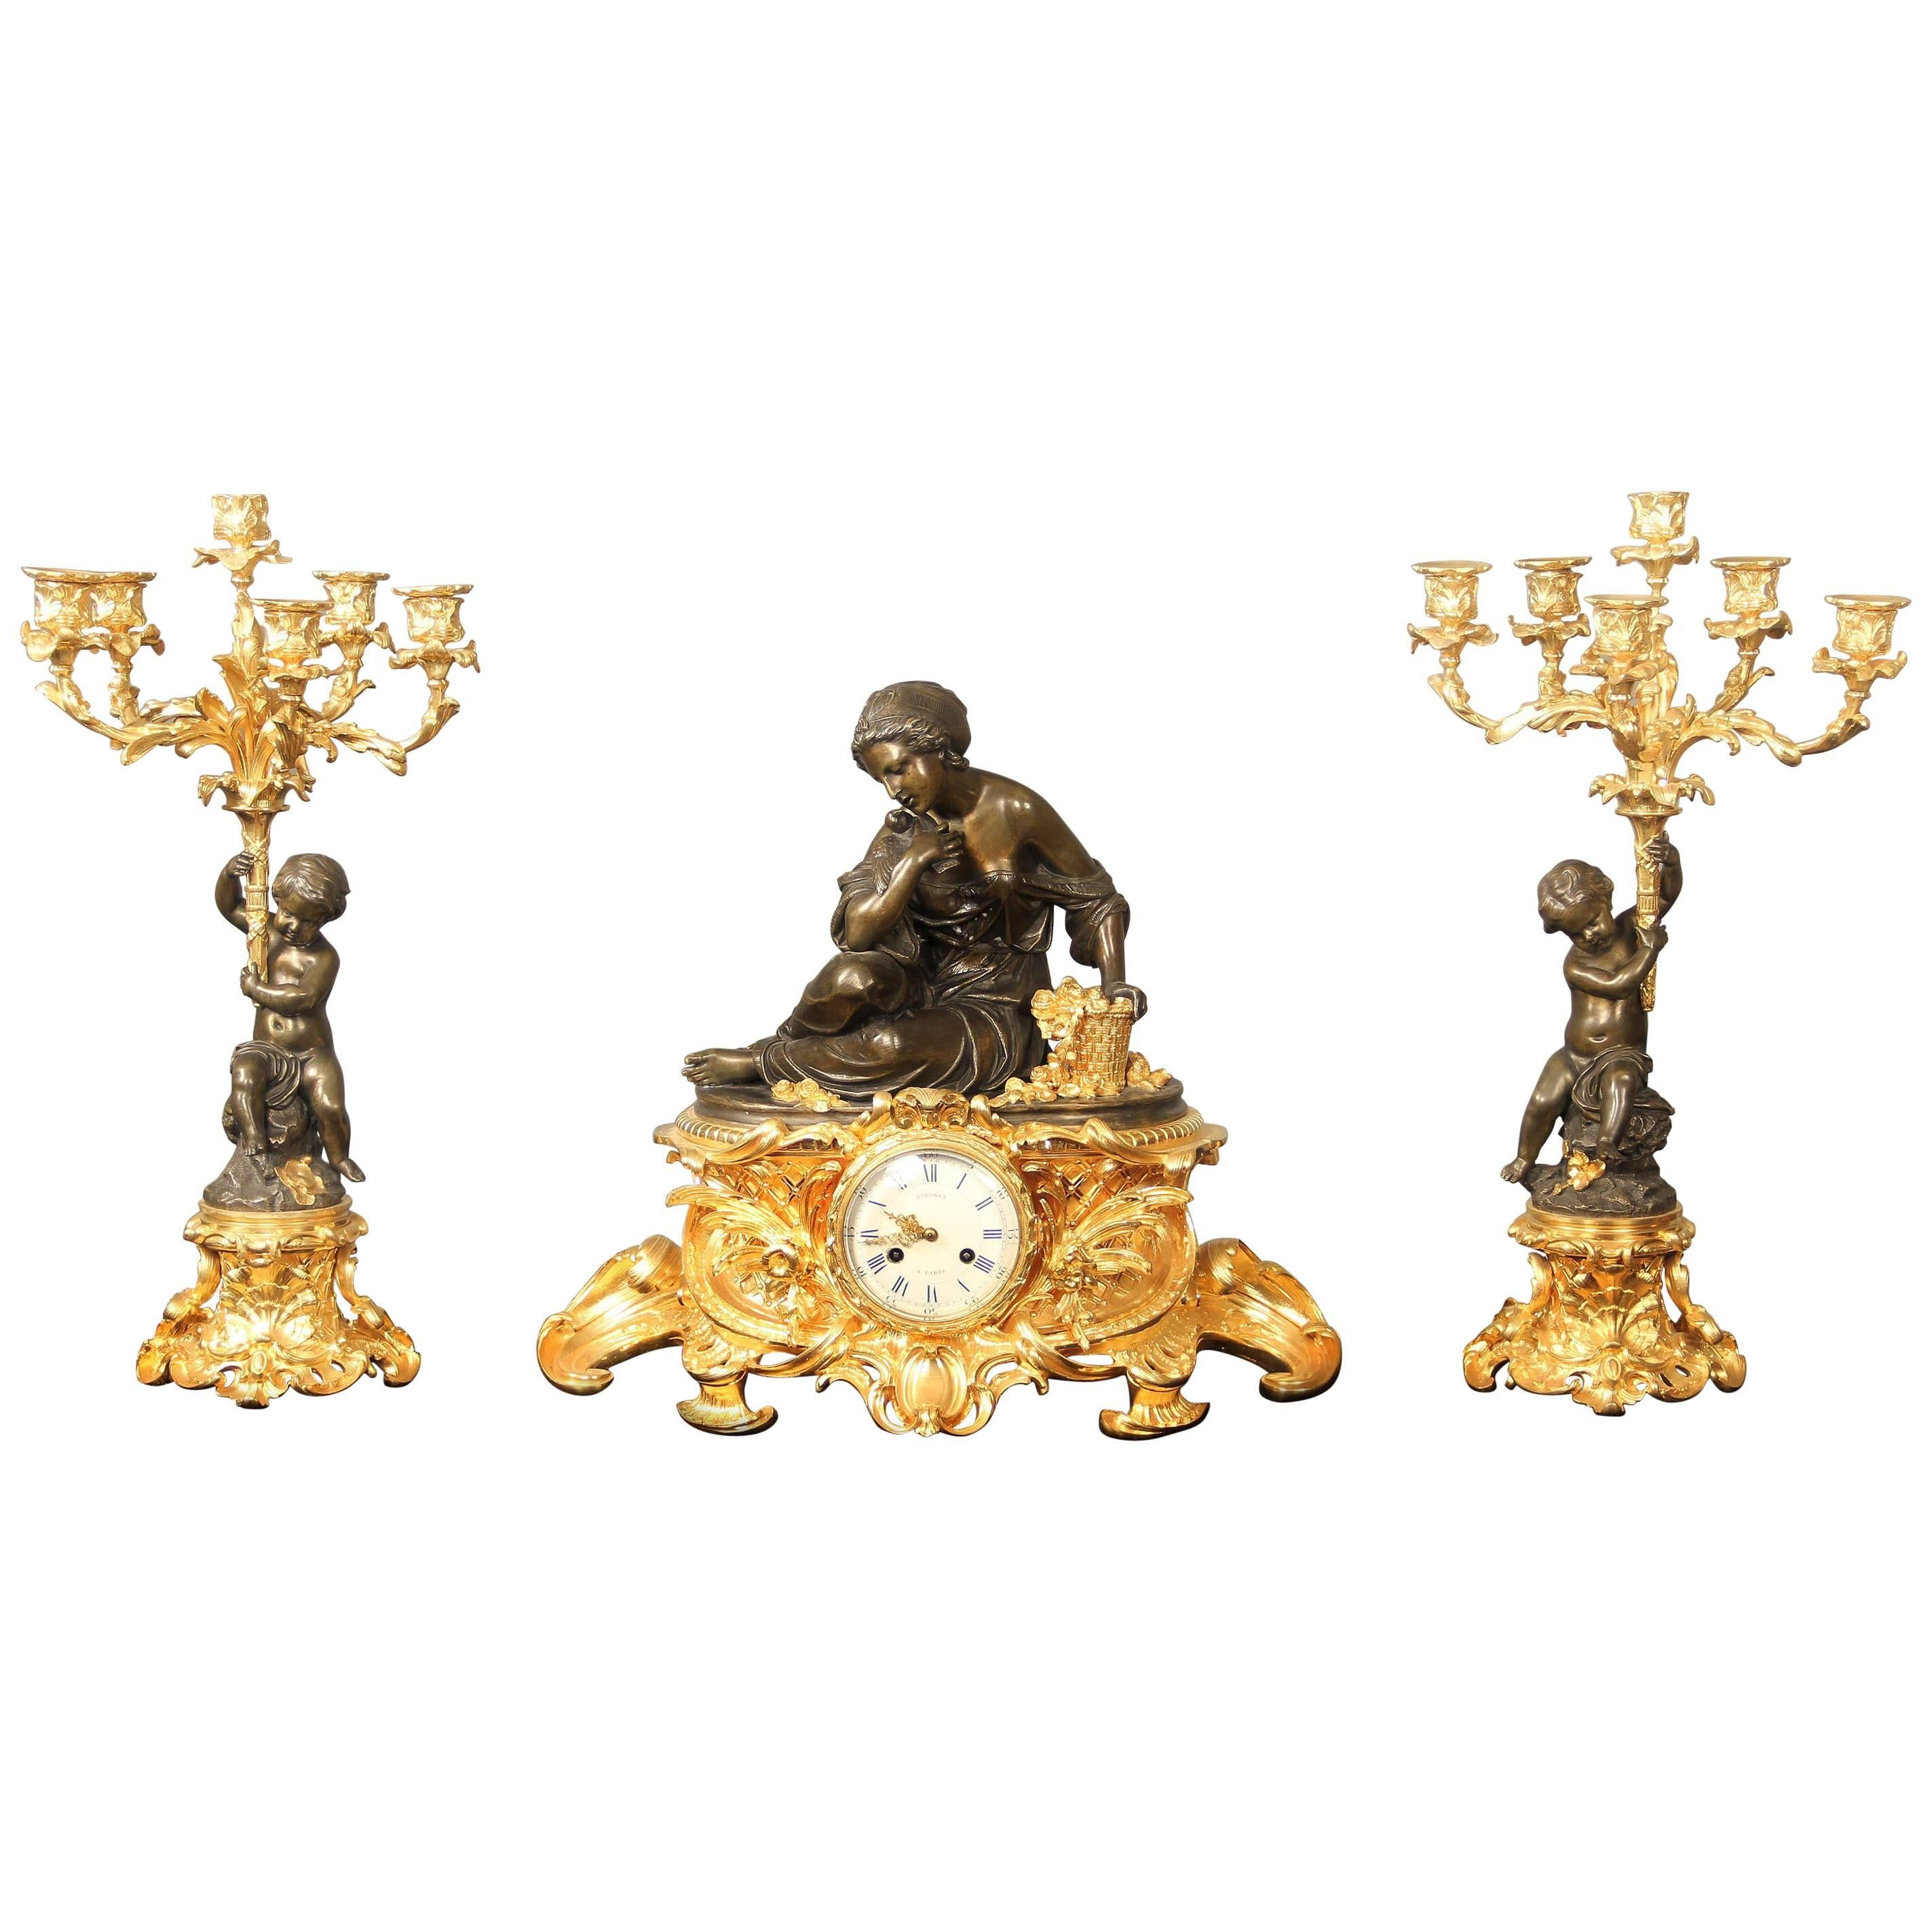 19th Century Gilt and Patinated Bronze Three Piece Clock Set by Victor Pierret